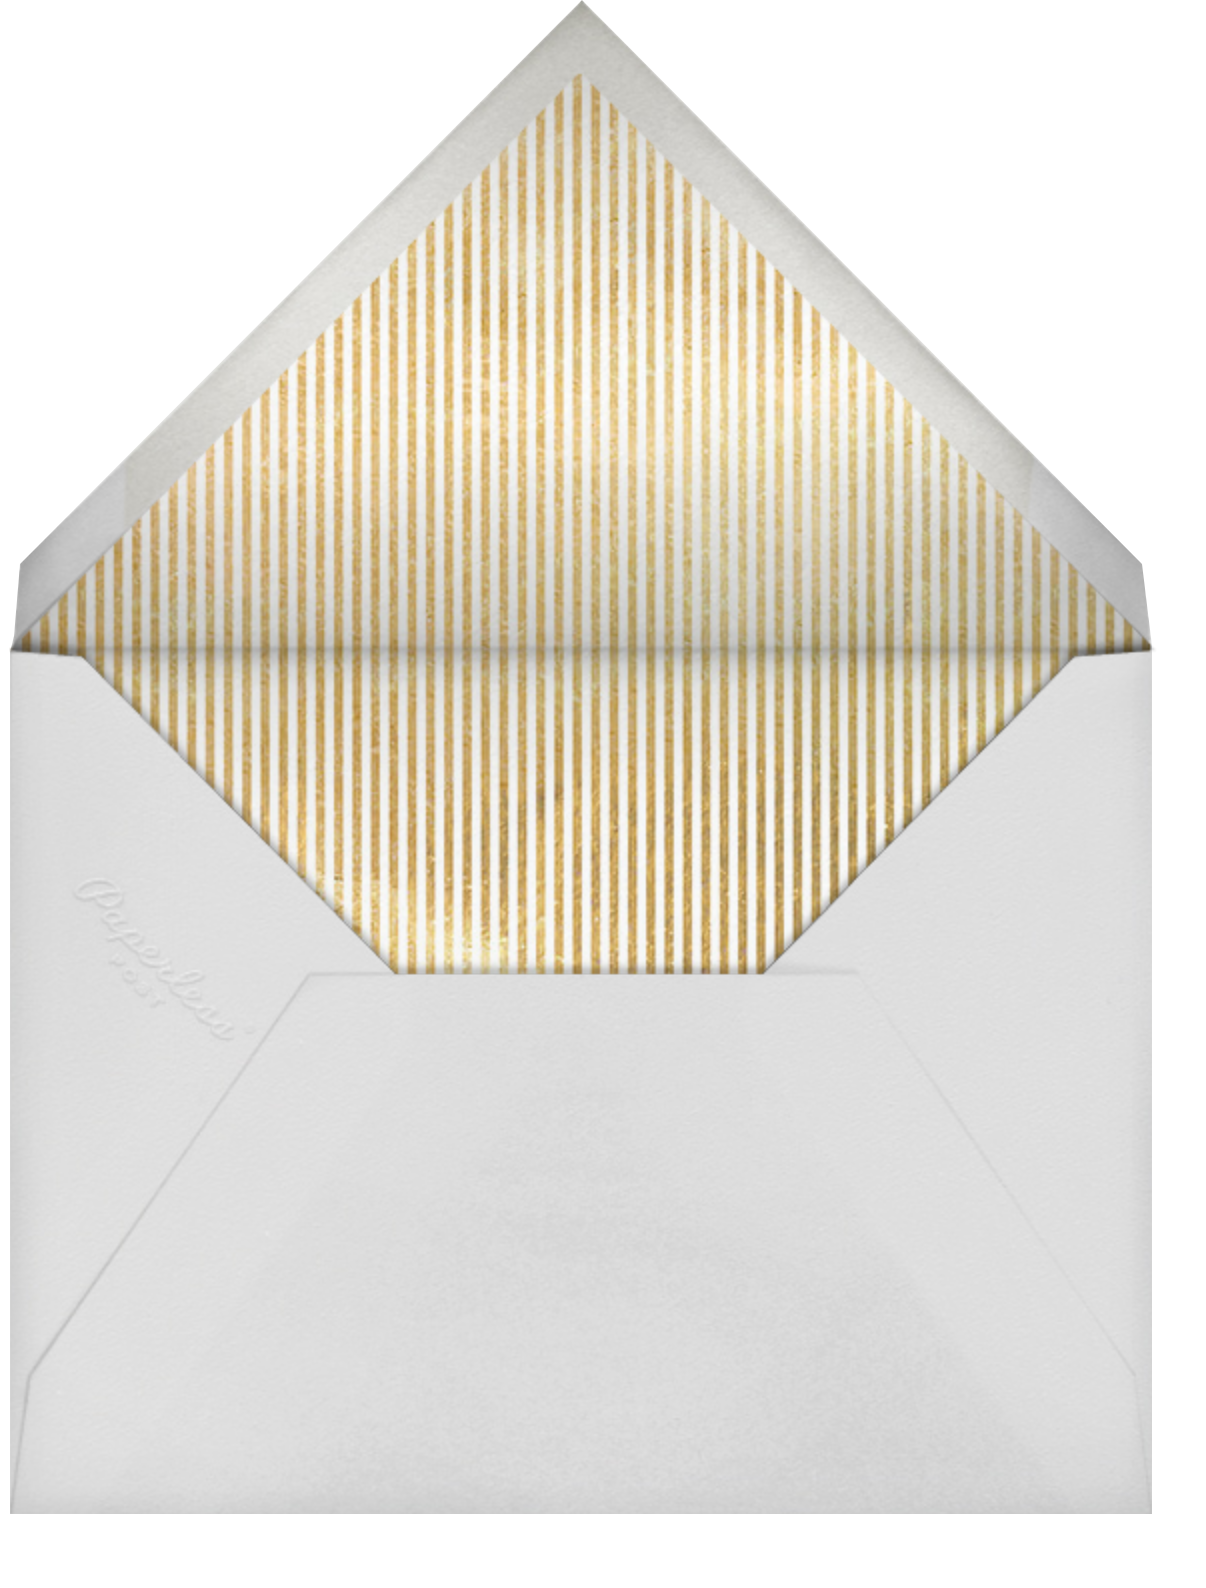 Swaying Fringe - Gold - Paperless Post - Adult birthday - envelope back